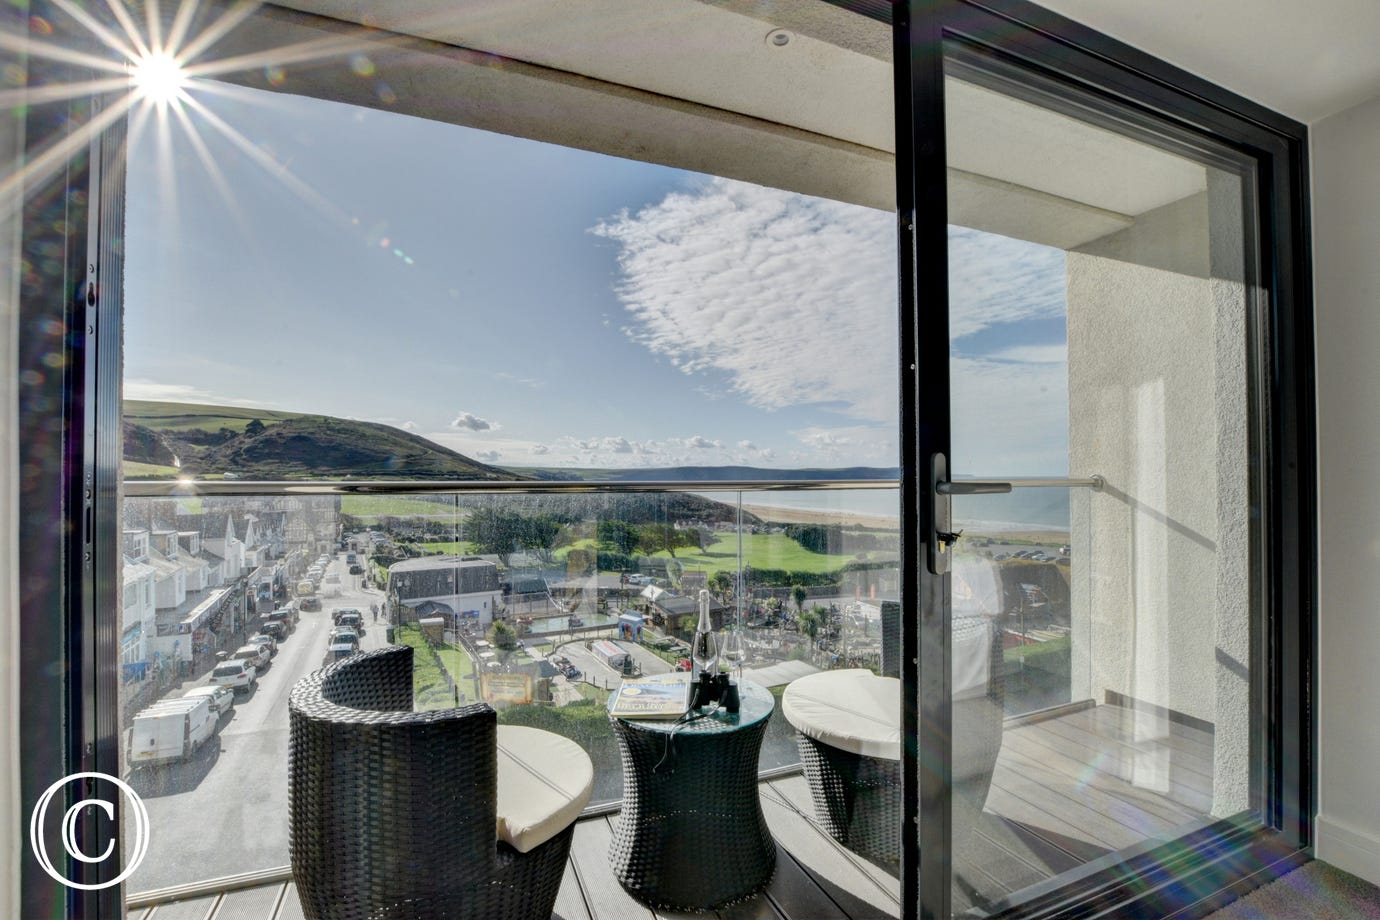 Number 5 Byron offers stunning views over Woolacombe Sands